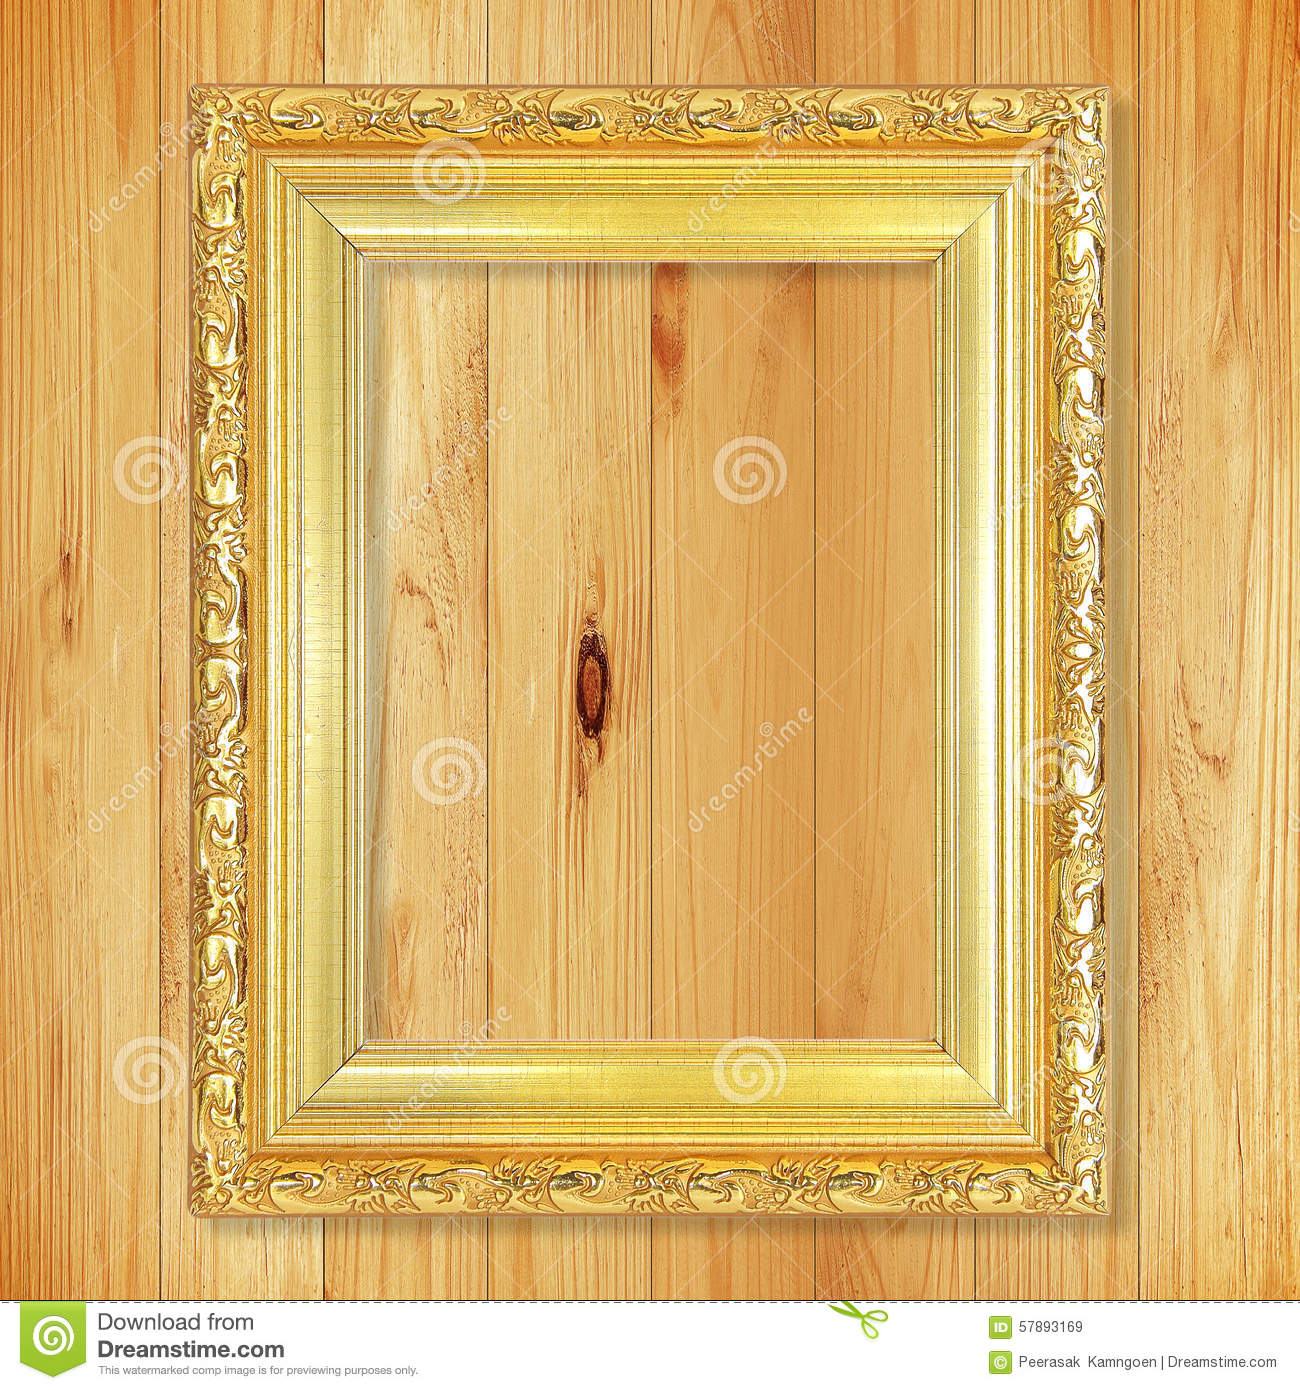 Antique gold frame on wooden wall;. Empty picture frame on woode